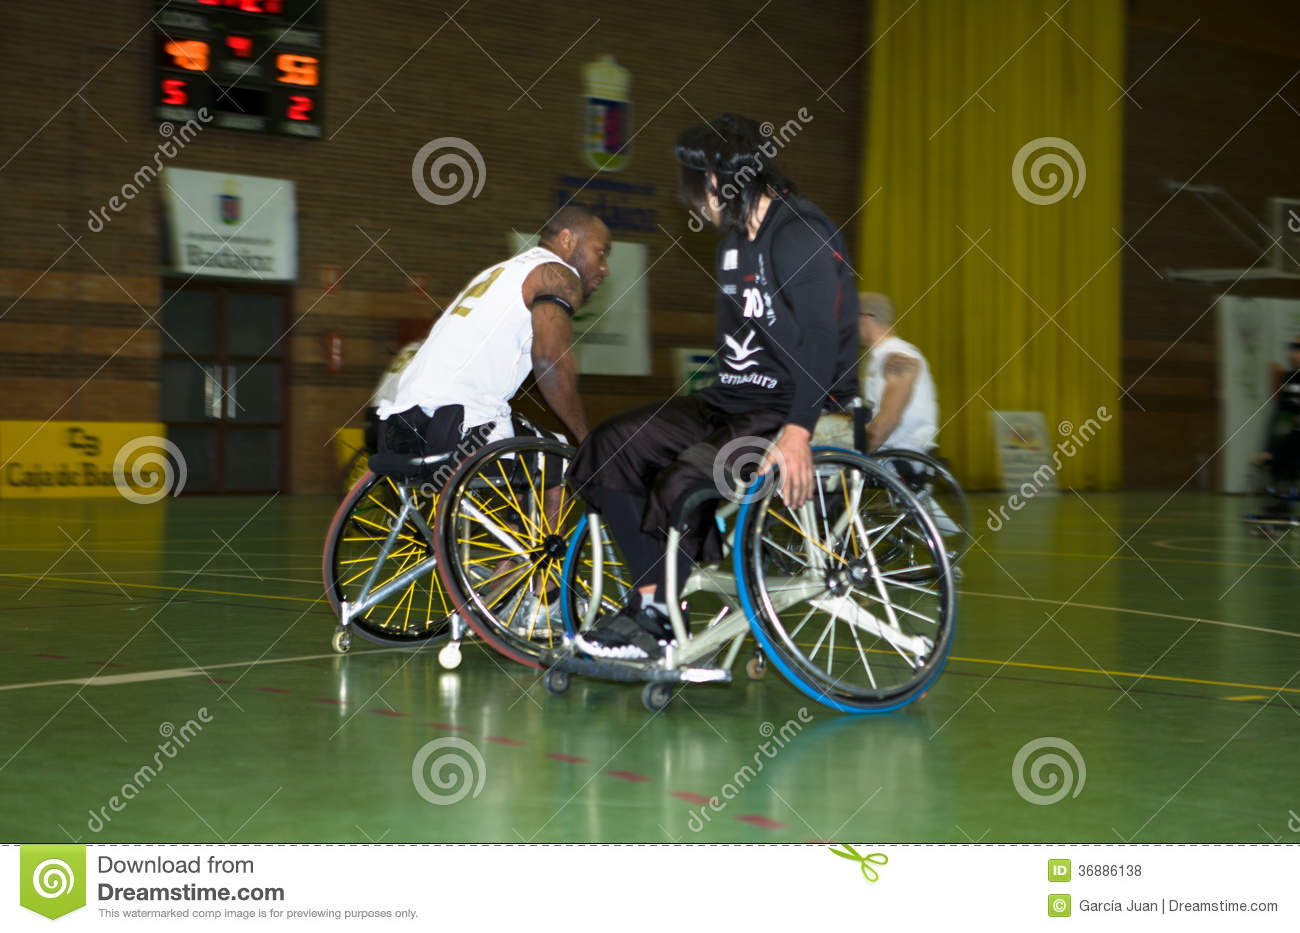 wheelchair fight wedding chair covers burton on trent the ball editorial stock photo image of concept 36886138 badajoz spain january 23 unidentified people play a friendly game basketball 2011 in